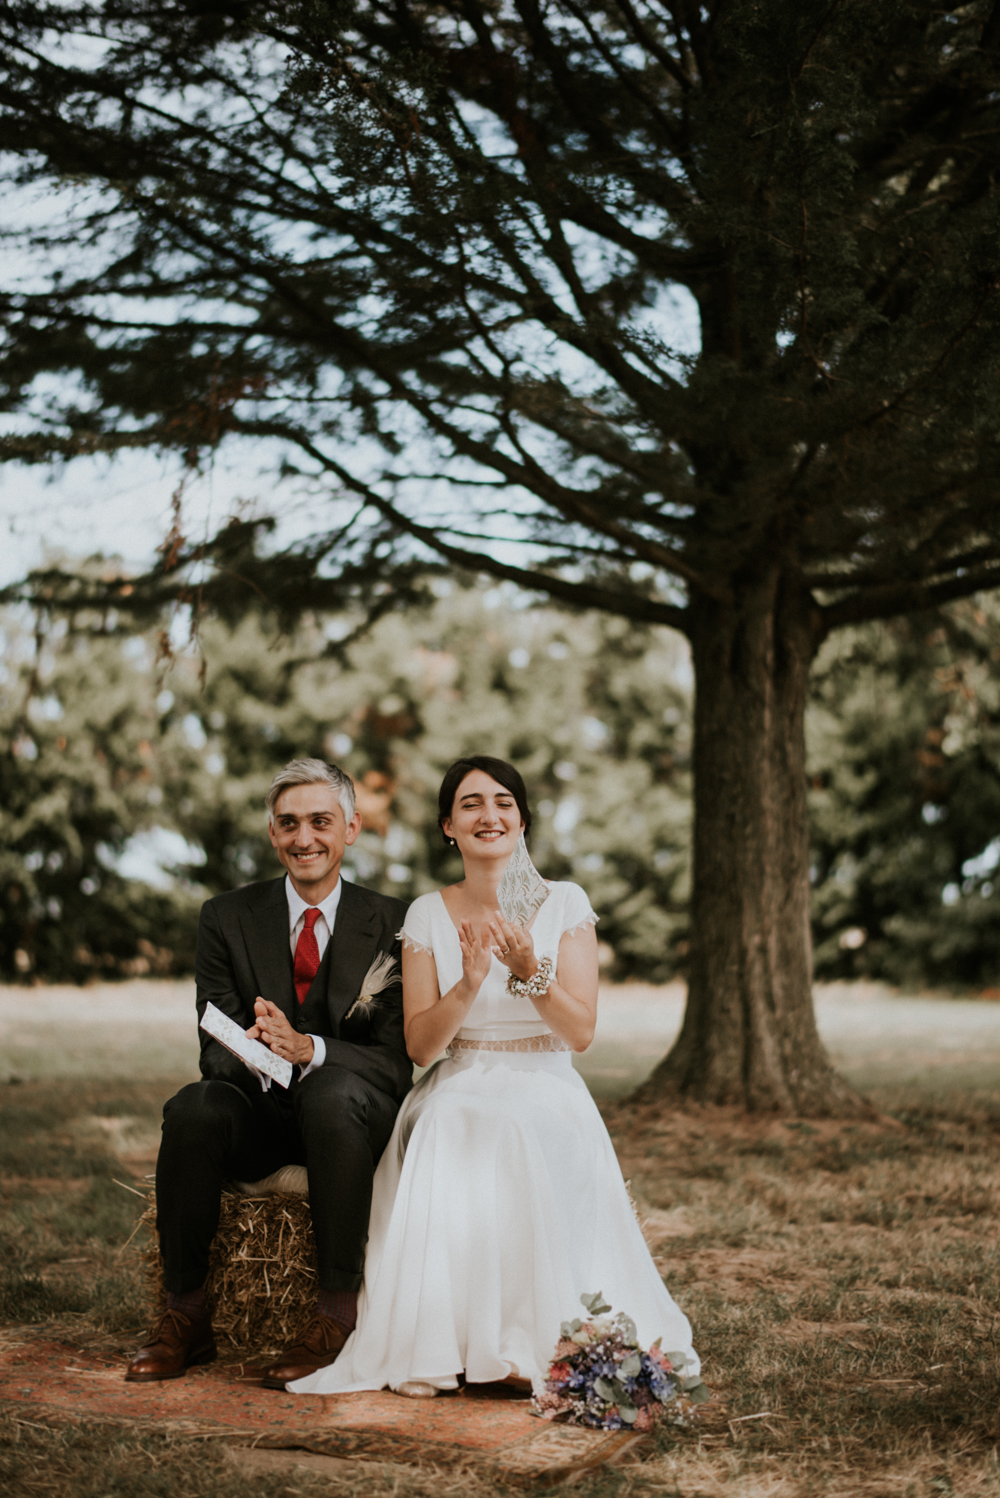 documentary wedding photographer in south of france